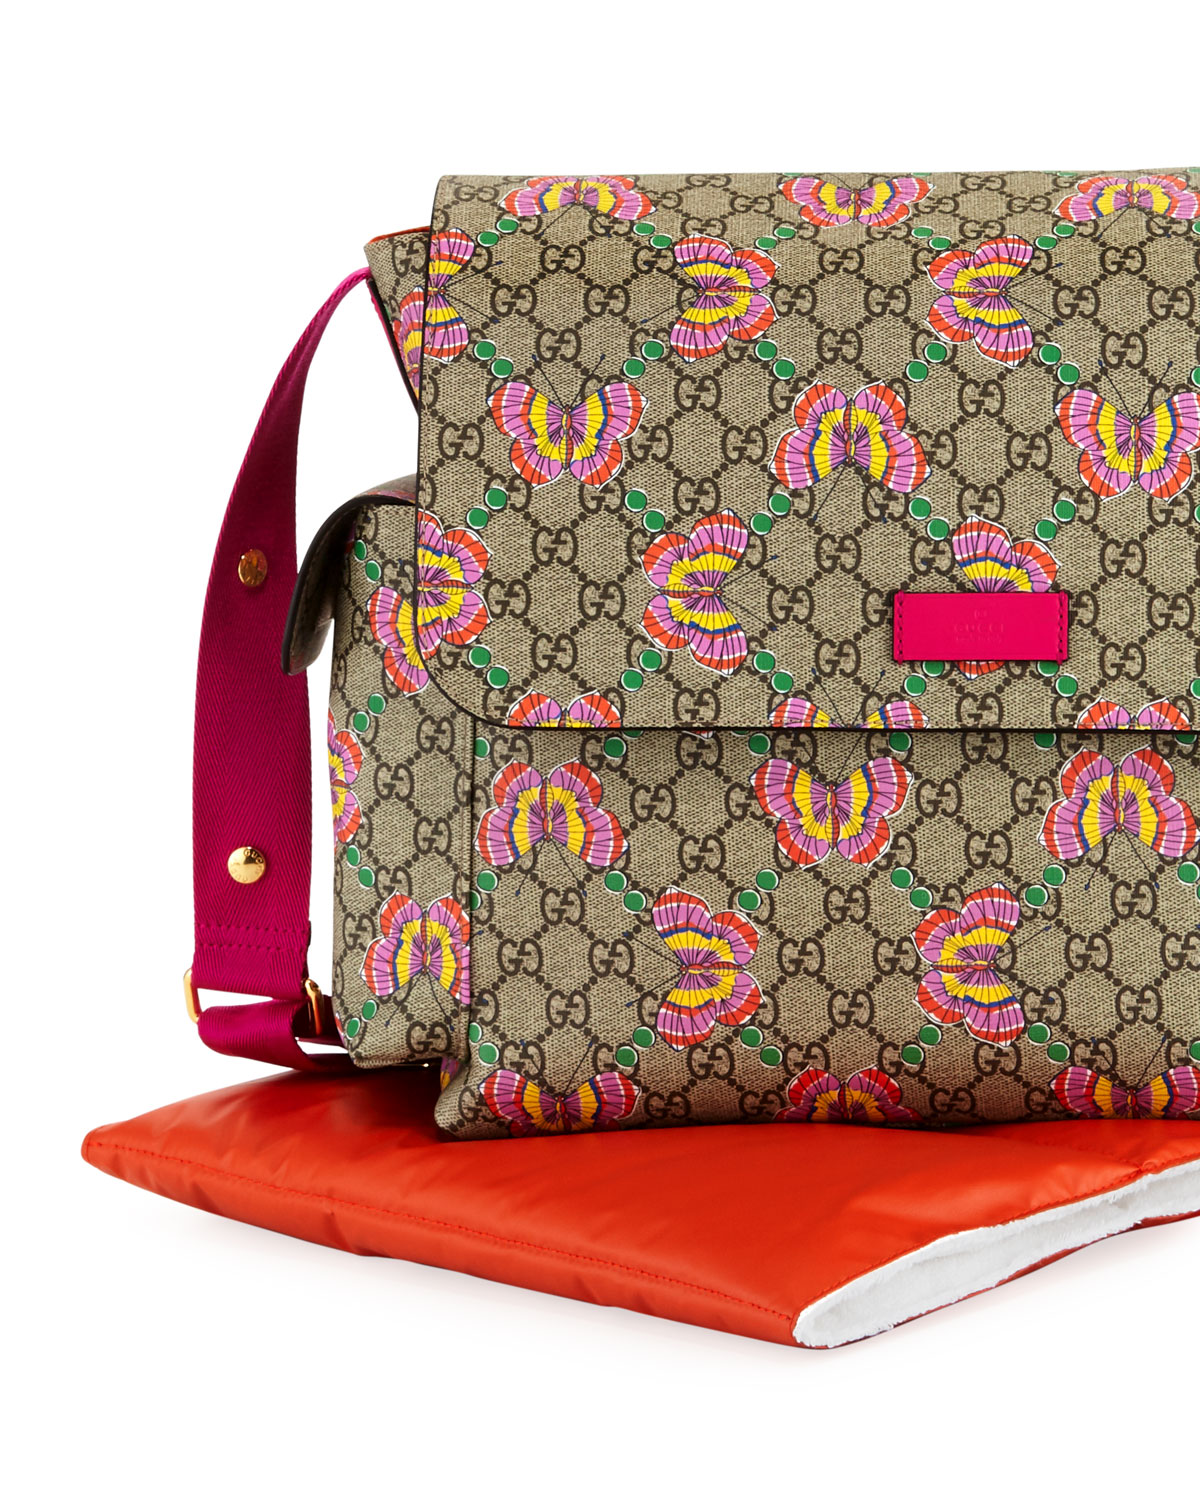 695b34015 Gucci GG Supreme Canvas Butterfly Diaper Bag w/ Changing Pad | Neiman Marcus